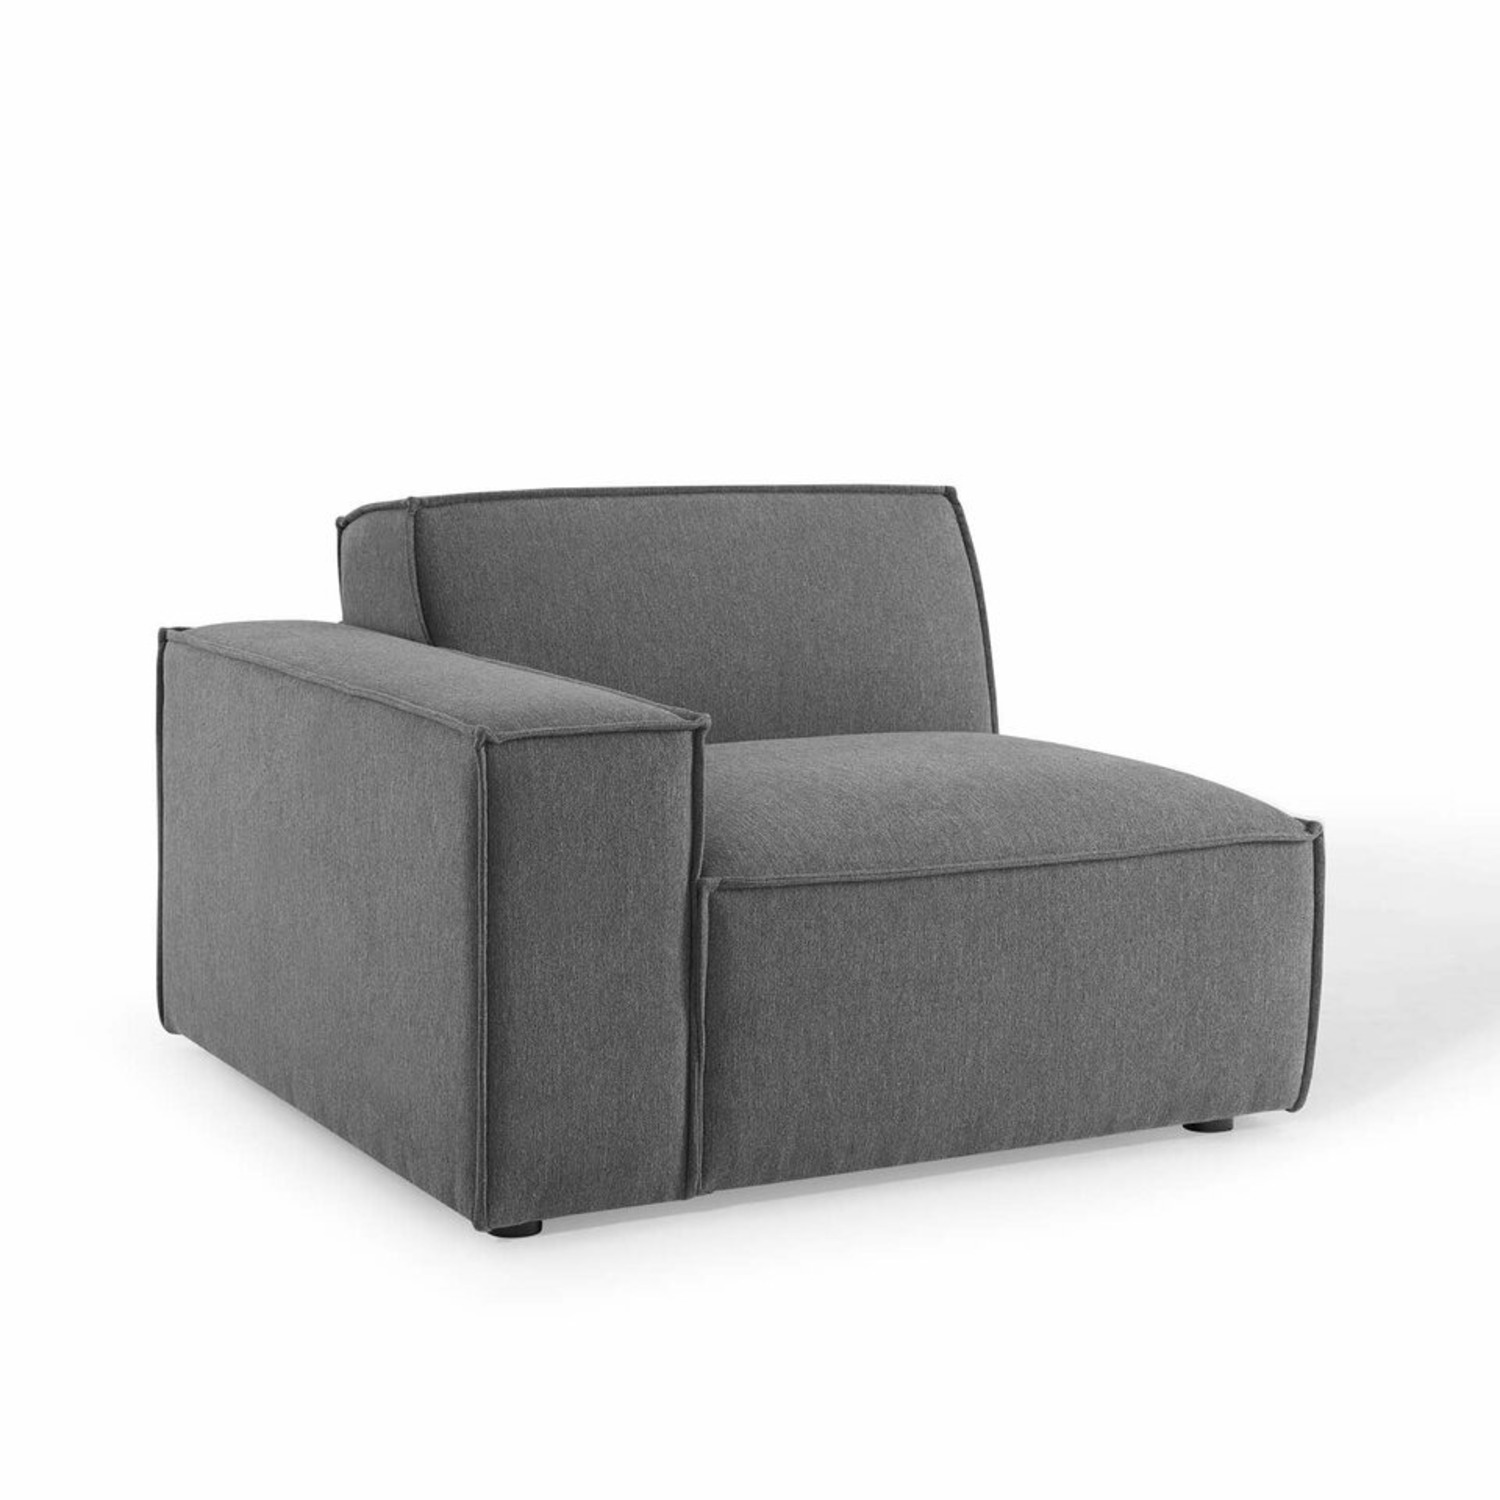 6-Piece Sectional Sofa In Charcoal Fabric - image-4